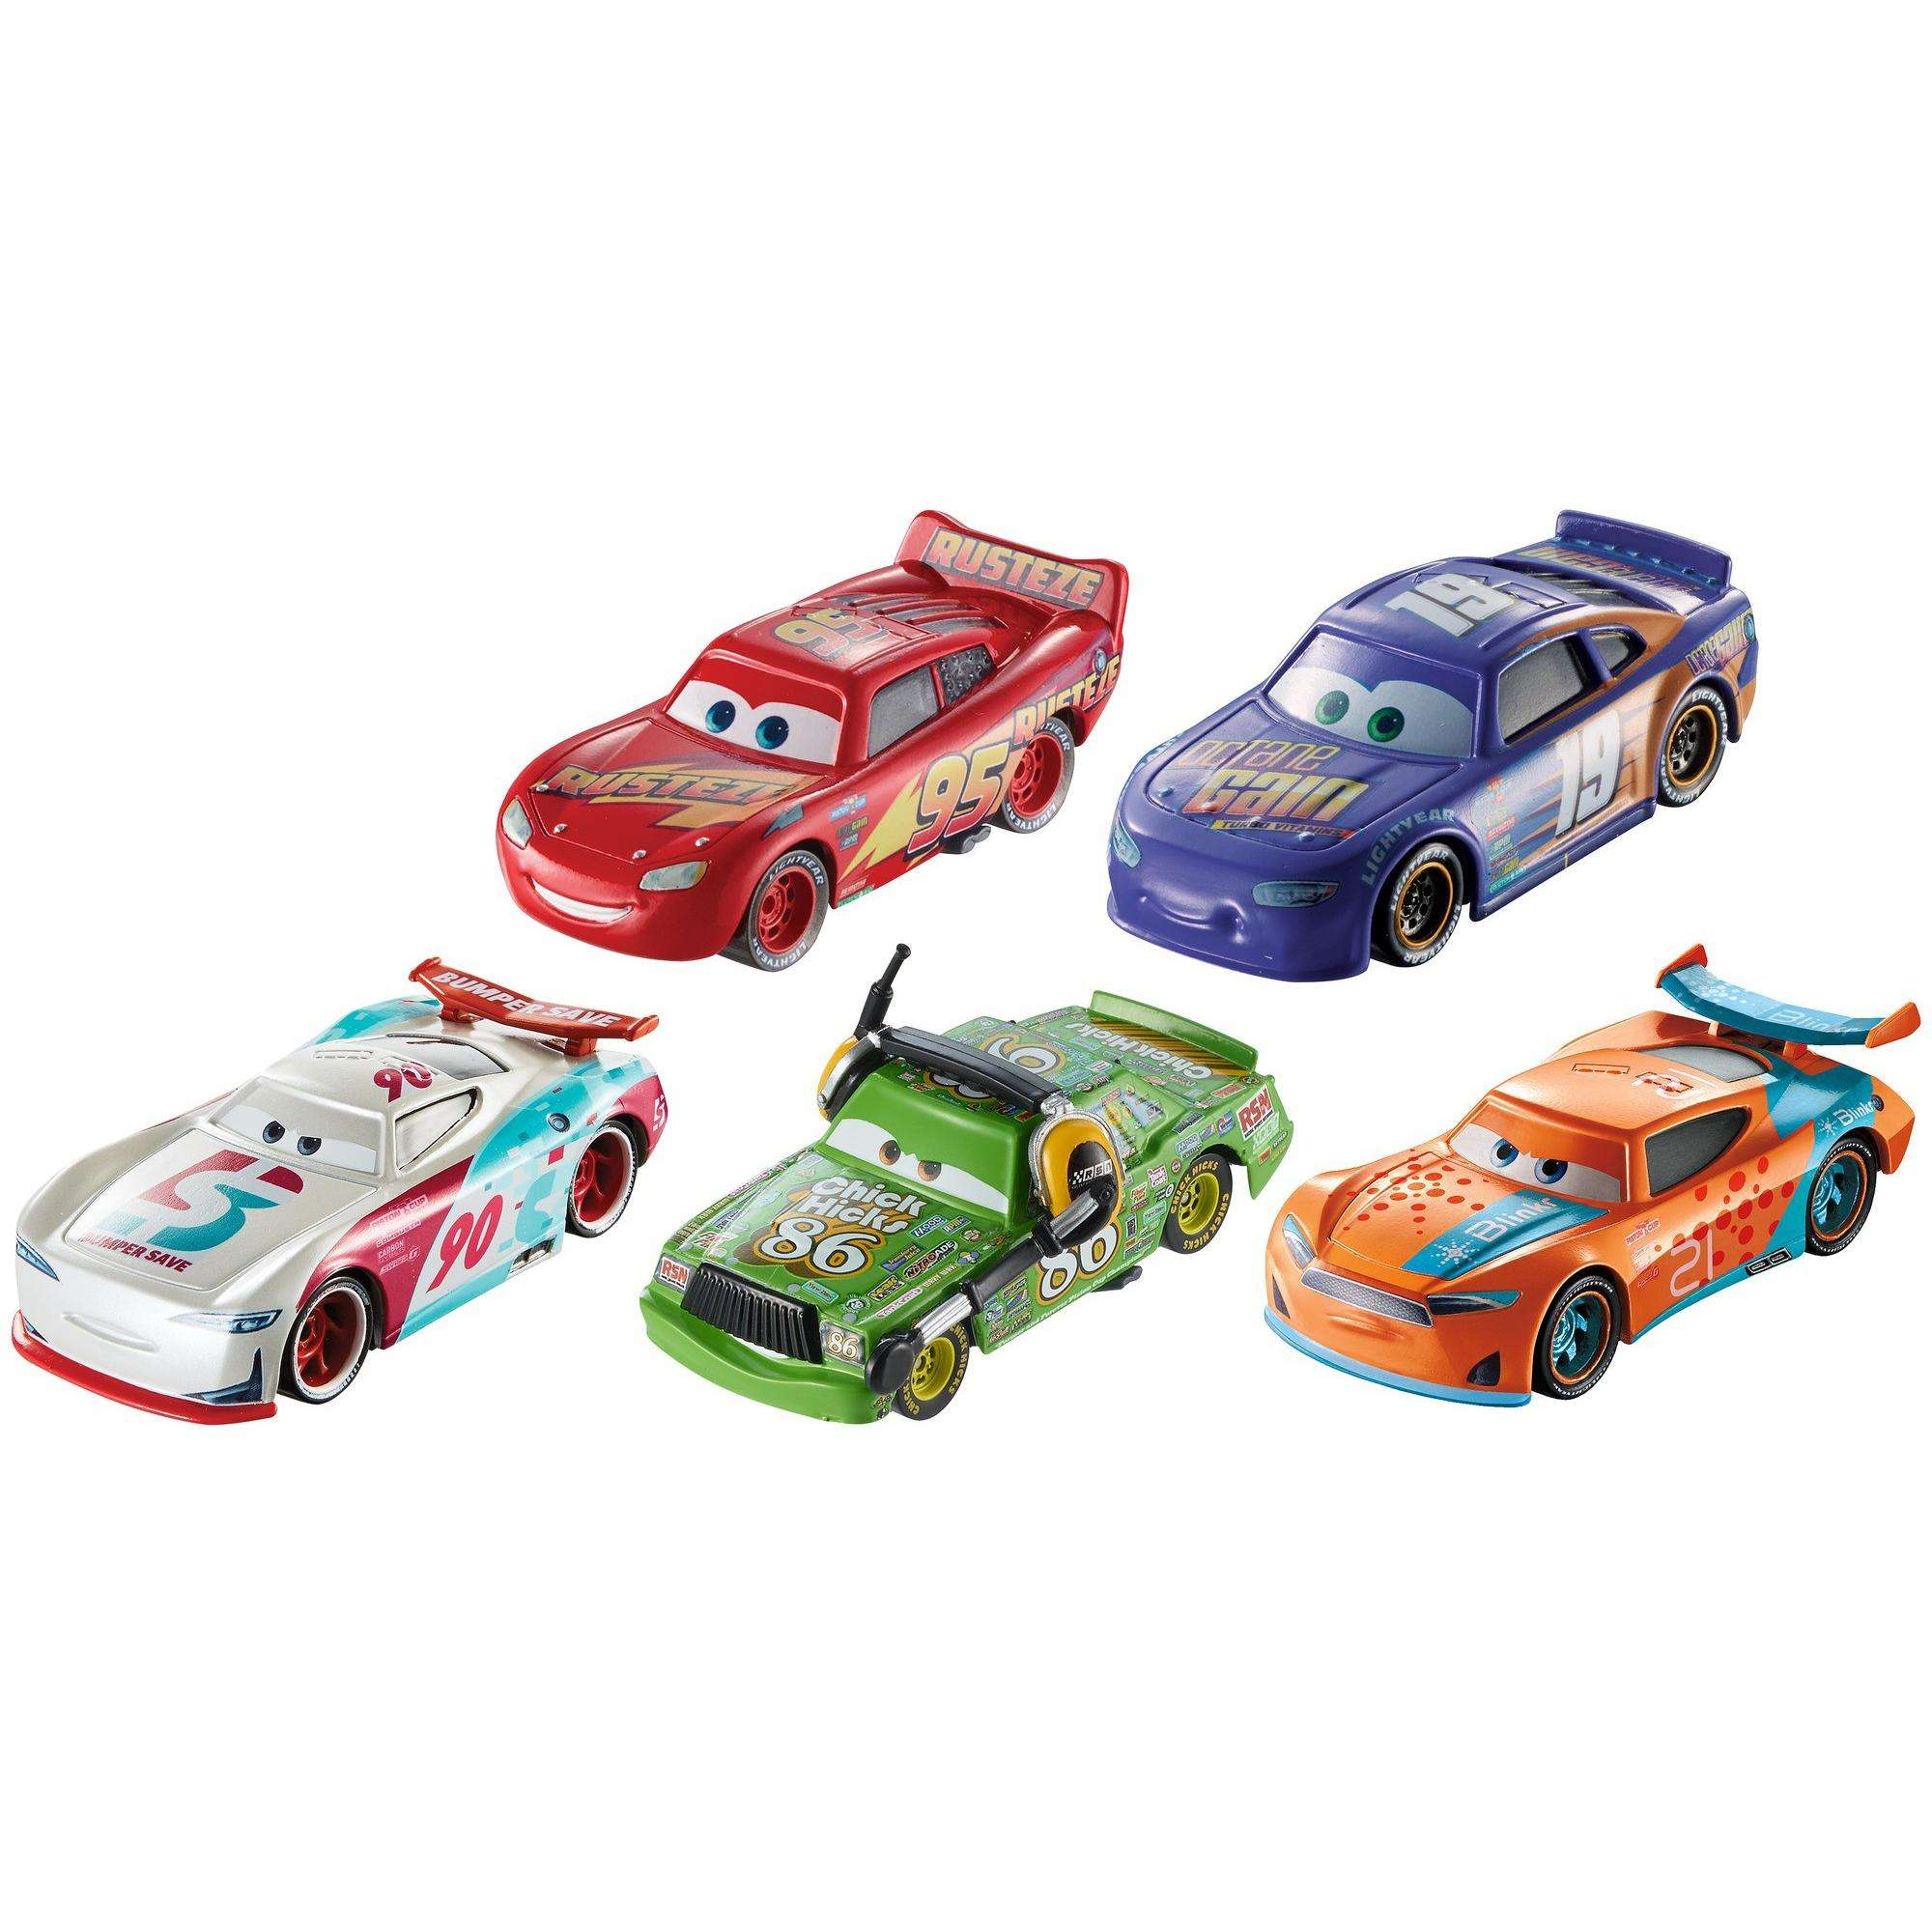 Disney/Pixar Cars 3 1:55 Scale Vehicle 5-Pack